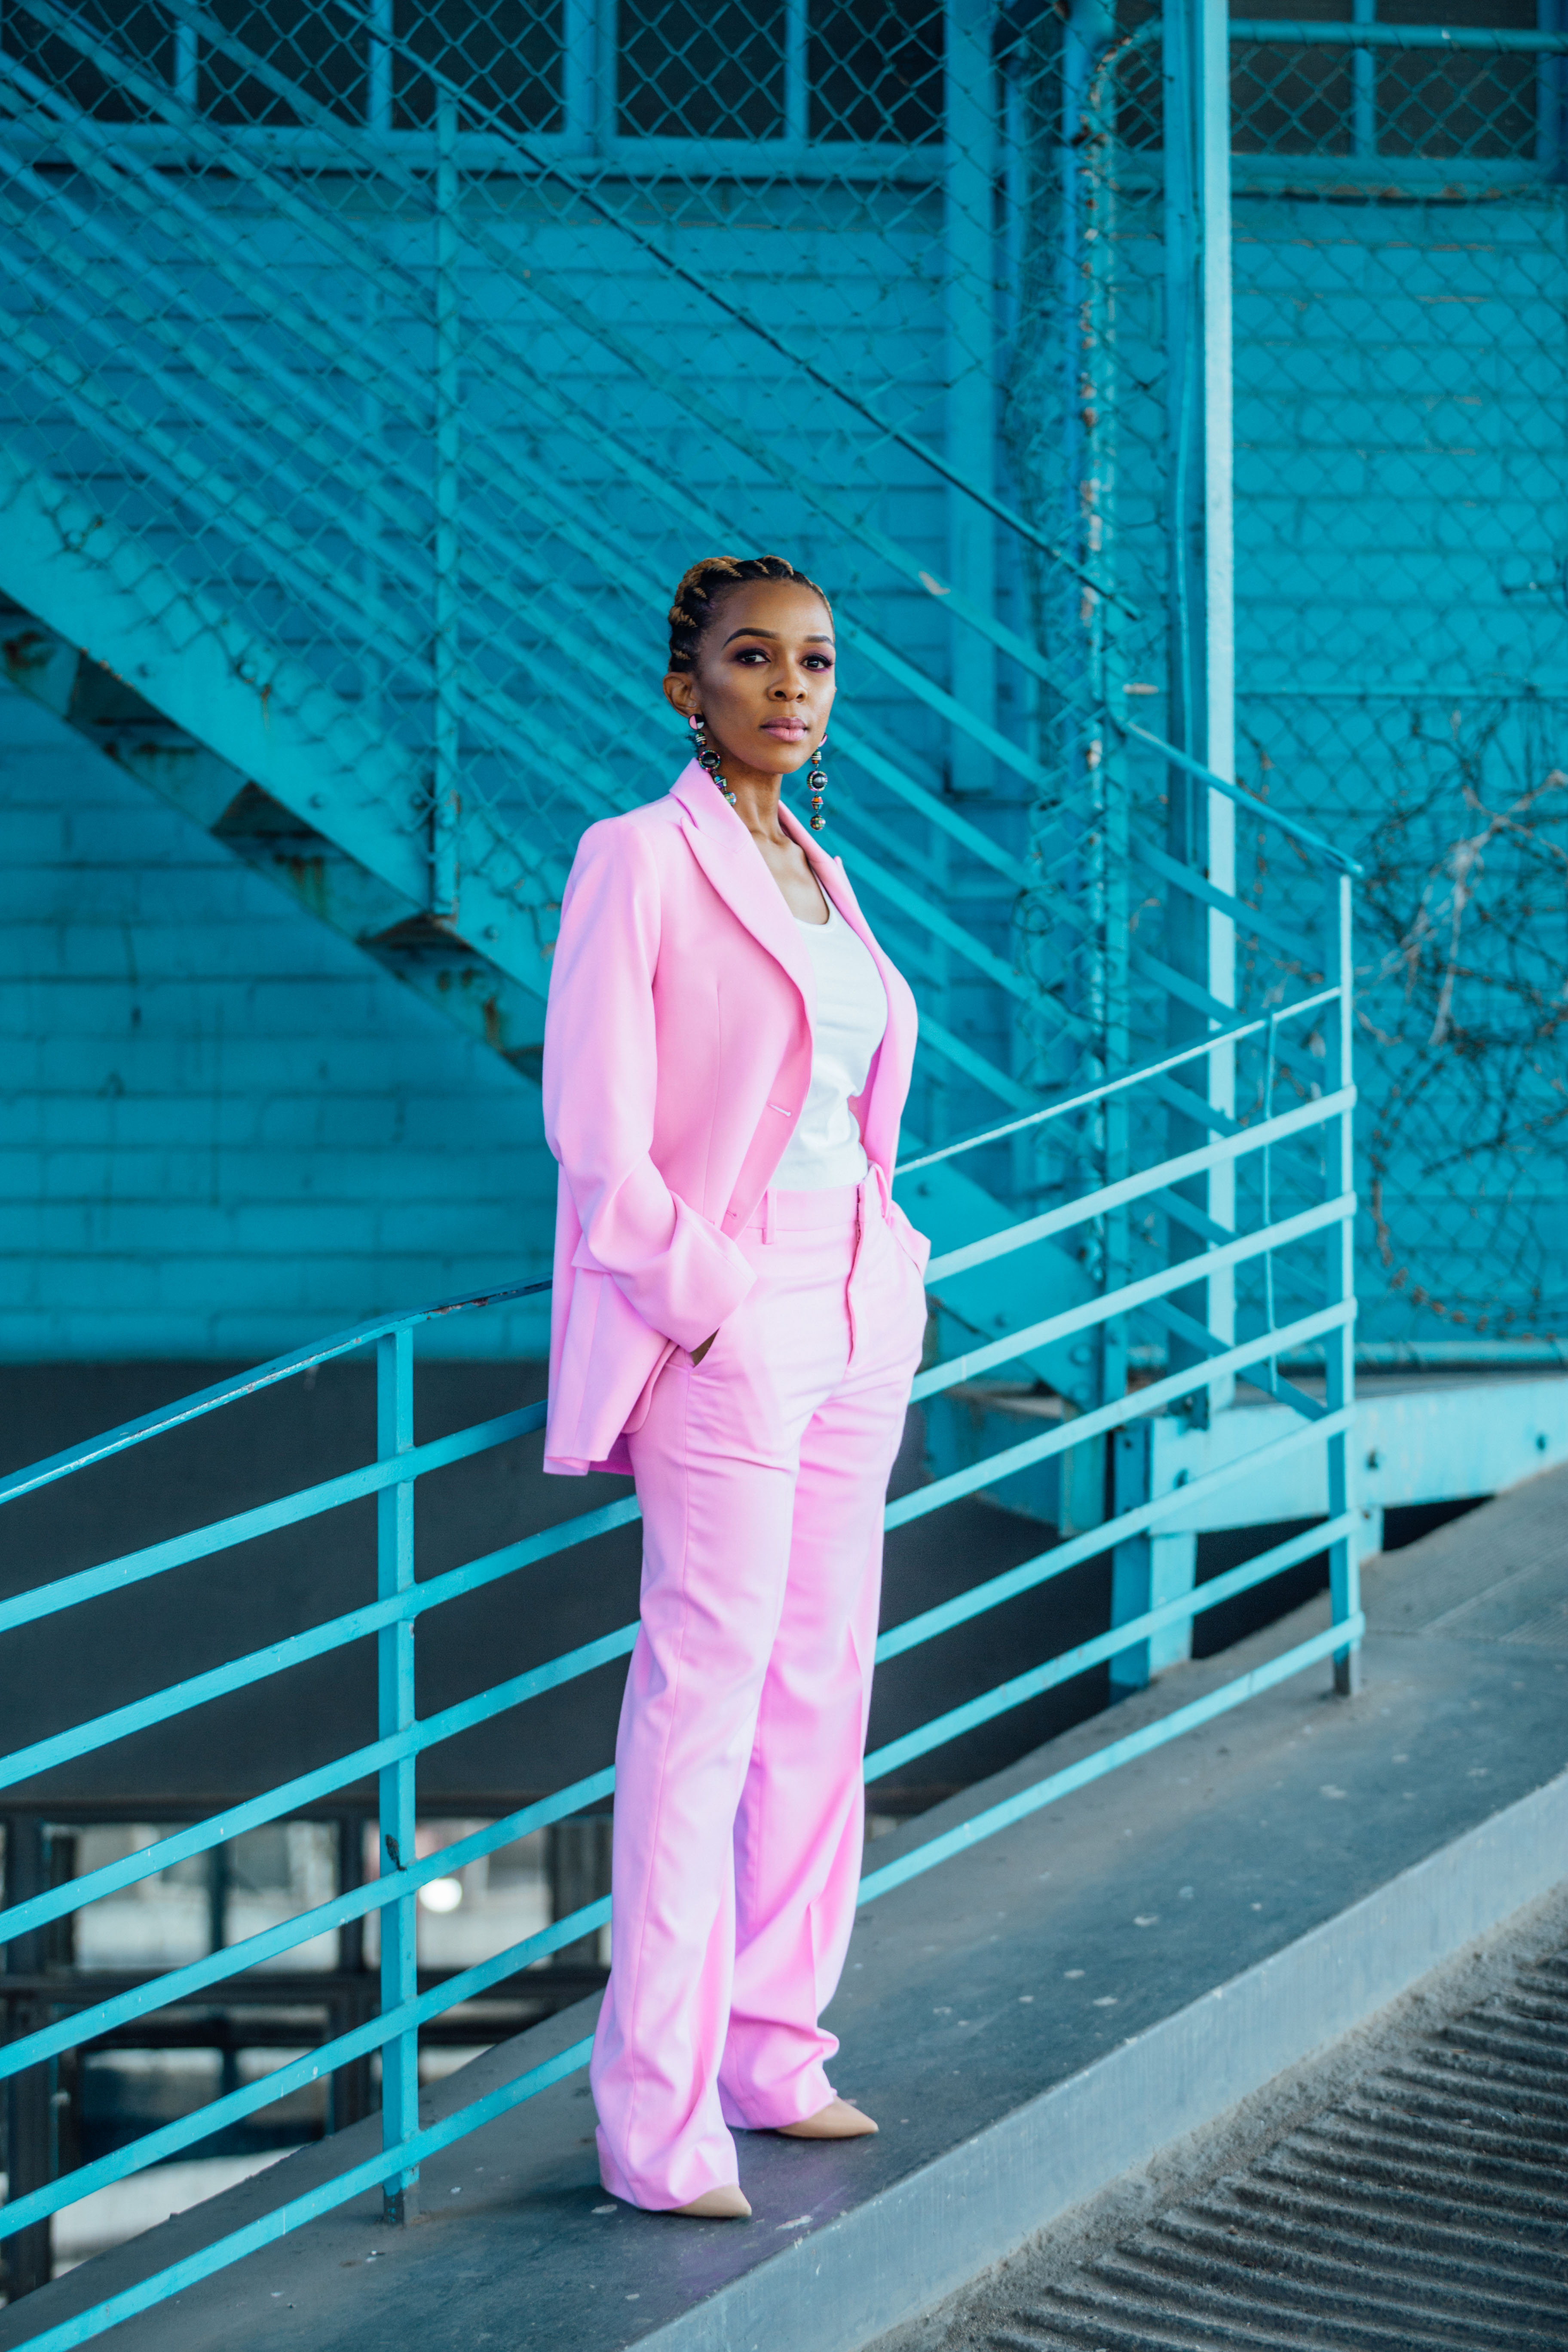 Zama Ngcobo launches Leading Citizens, on SABC3 on Monday at 20h30, a business lifestyle programme aimed at invigorating entrepreneurship in South Africa